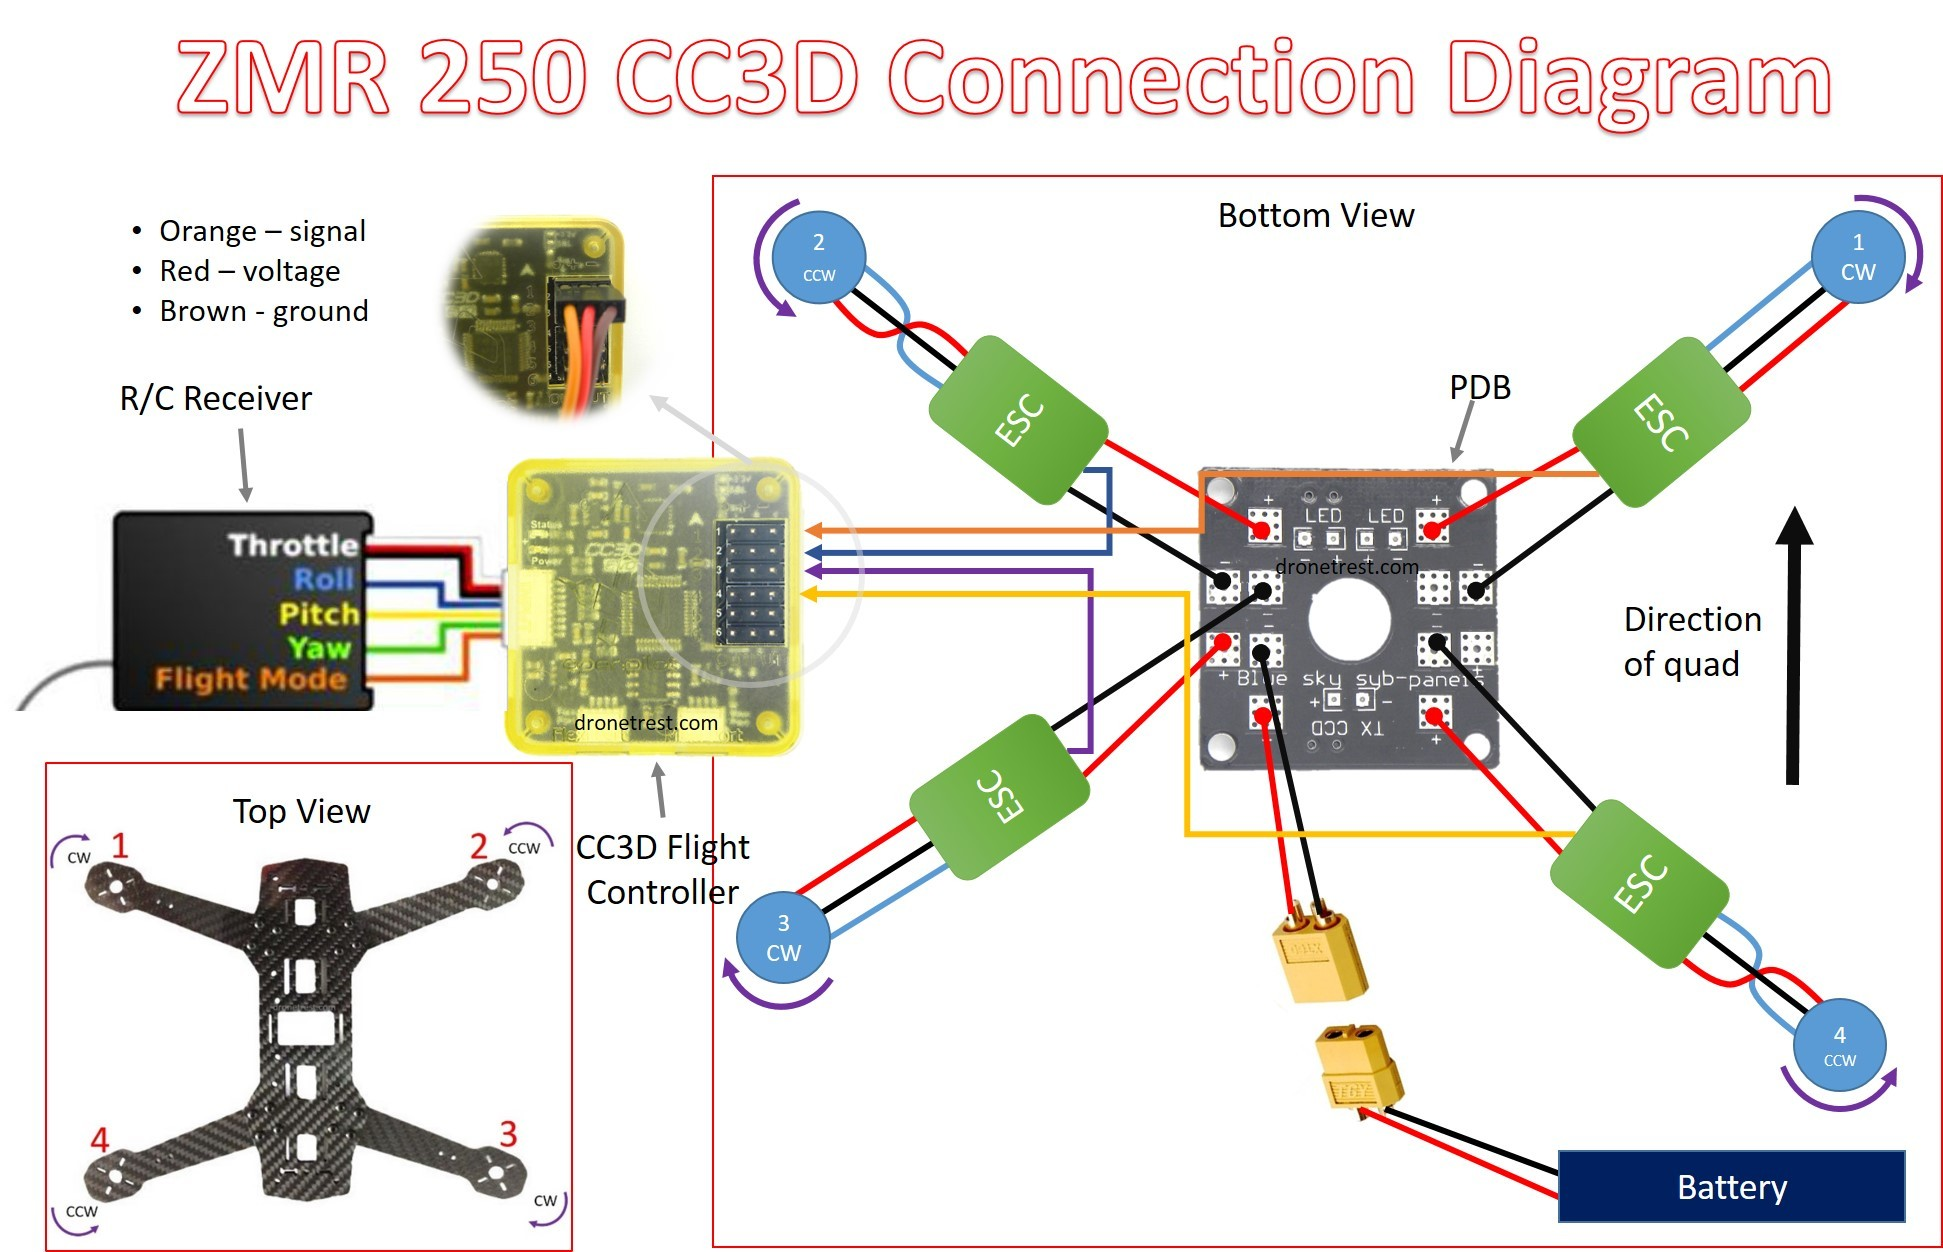 Esc Wiring Diagram Electronic Diagrams Helicopter Qav Zmr 250 Assembly Build Guide Guides Dronetrest Hager 240